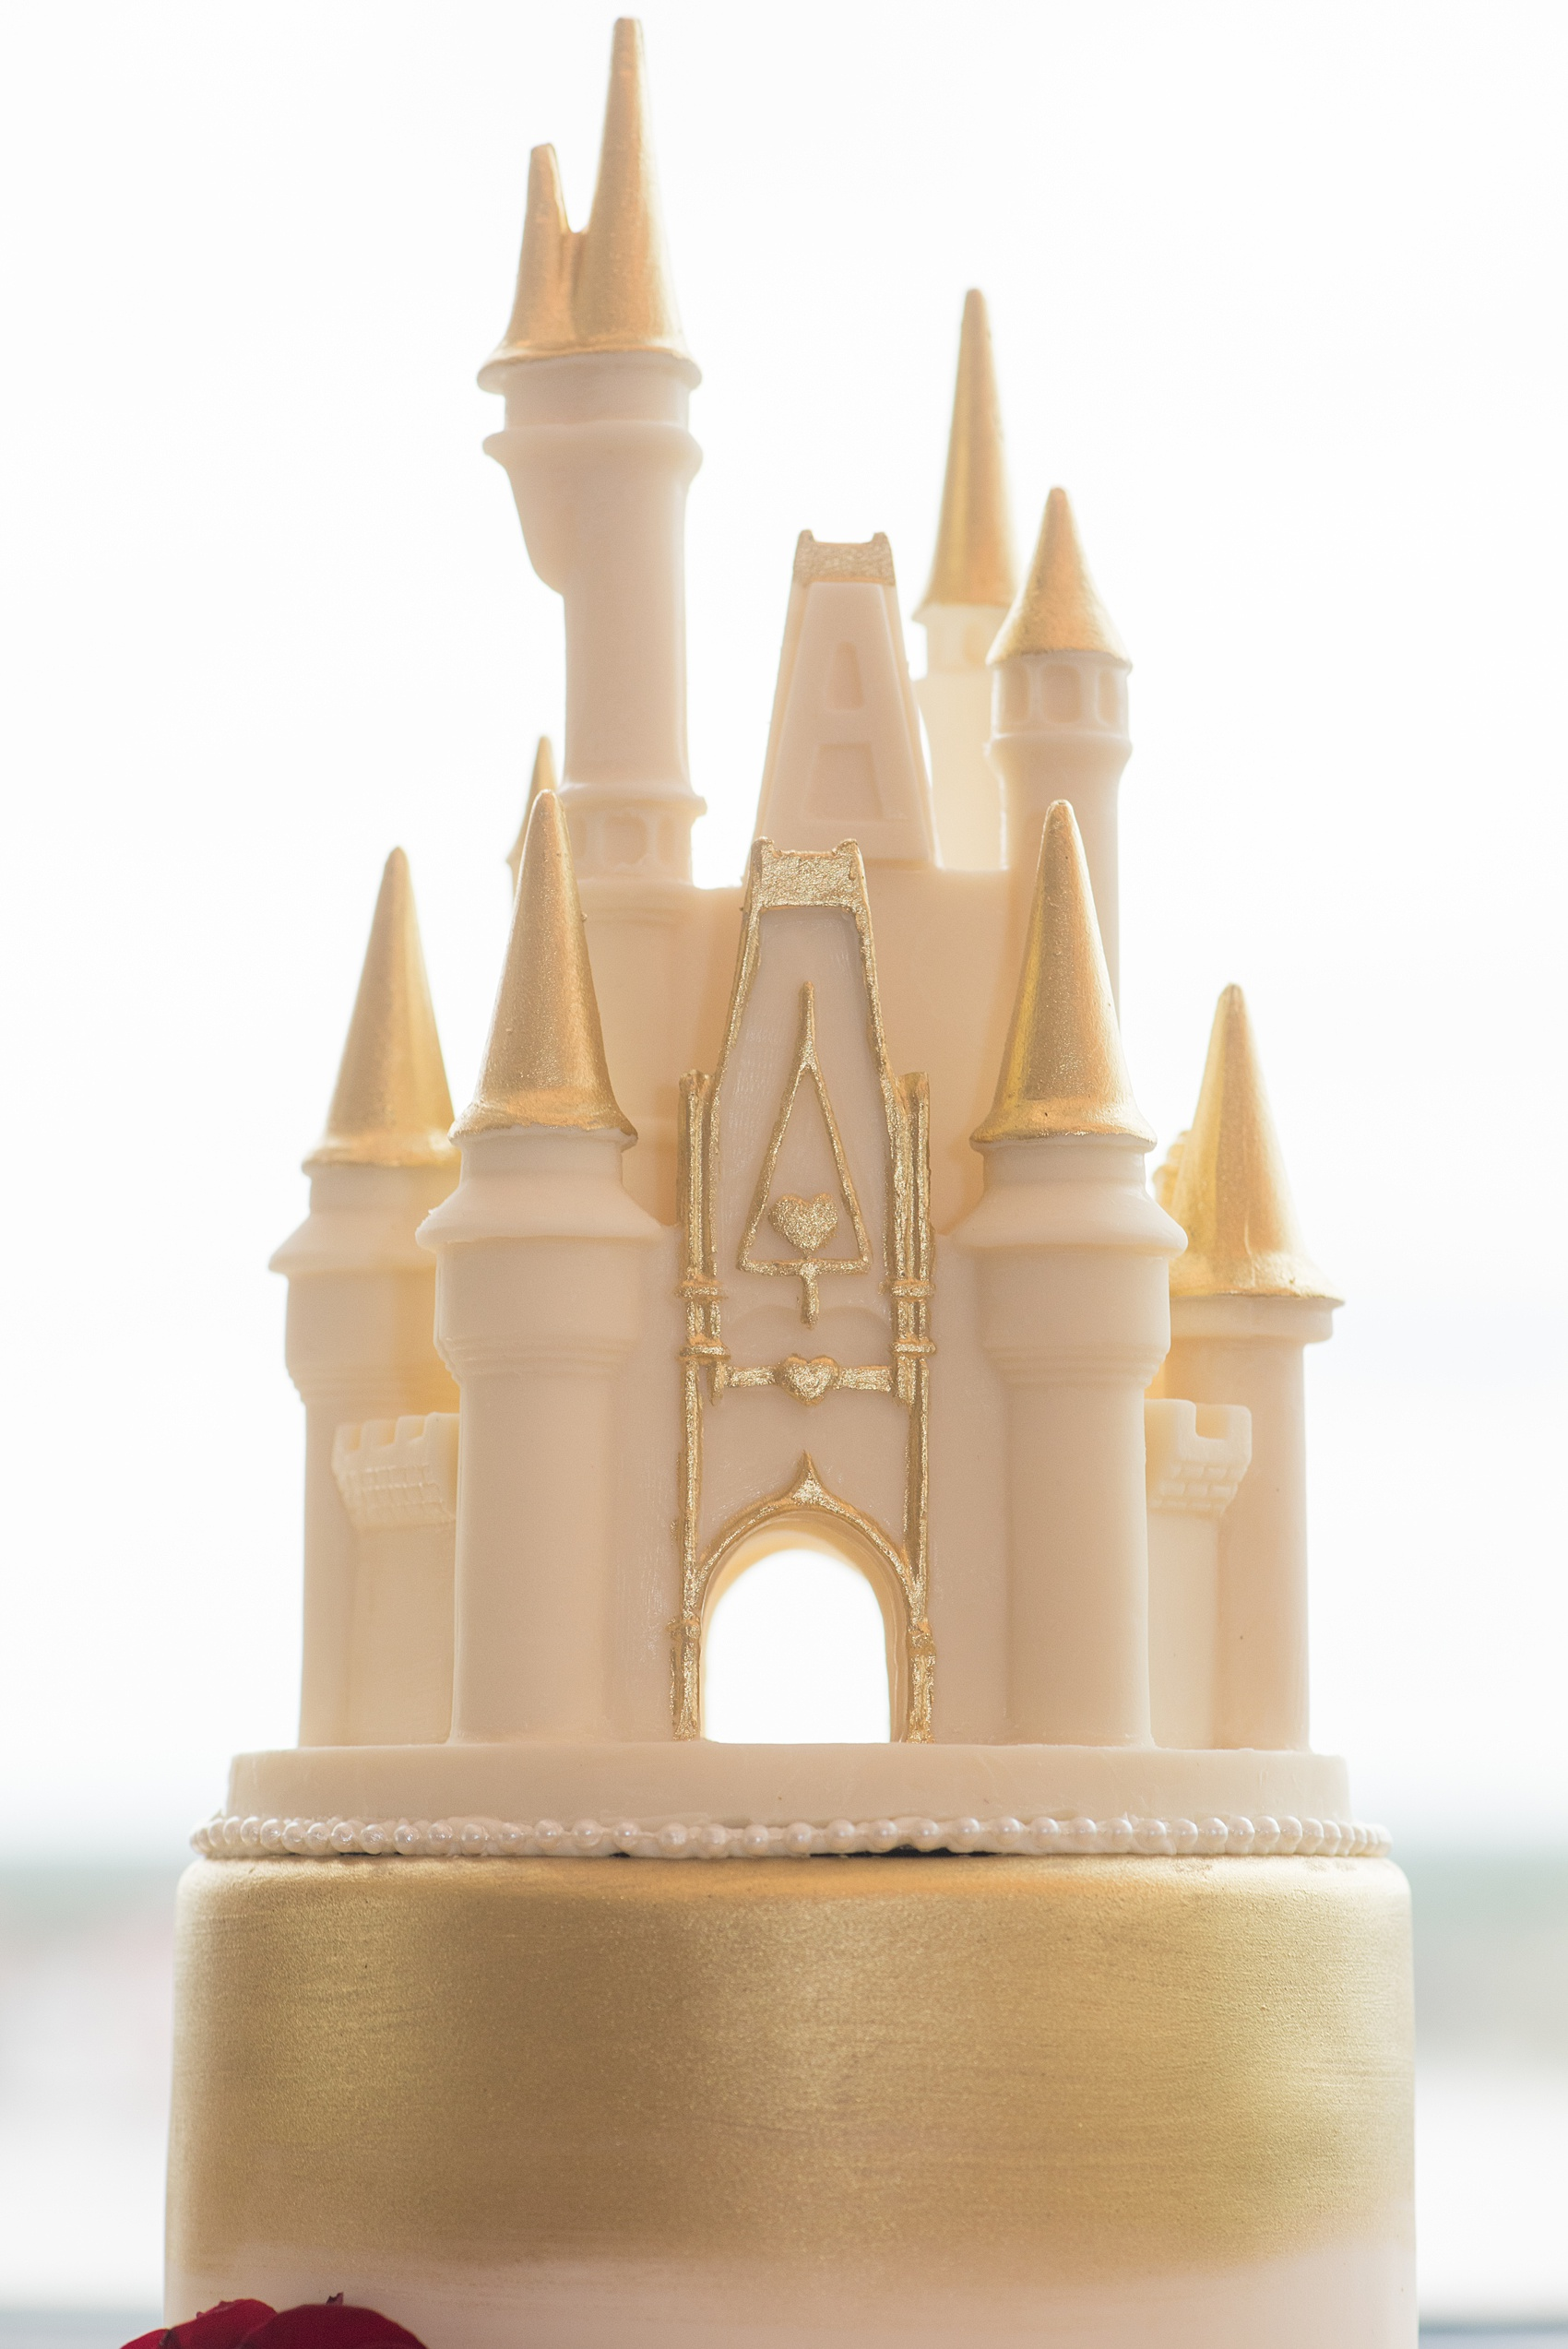 Photographs of a Walt Disney World wedding by Mikkel Paige Photography will give you ideas for a tasteful theme. The bride and groom's cake had red fondant with a Marvel Iron Man emblem. The top had a white chocolate Cinderella Castle with a brush of gold for a small reception celebration. #disneywedding #DisneyCake #DisneyWorldWedding #Disneyreception #californiagrill #ContemporaryResort #disneyweddingcake #MarvelWeddingCake #CinderellaCastleCake